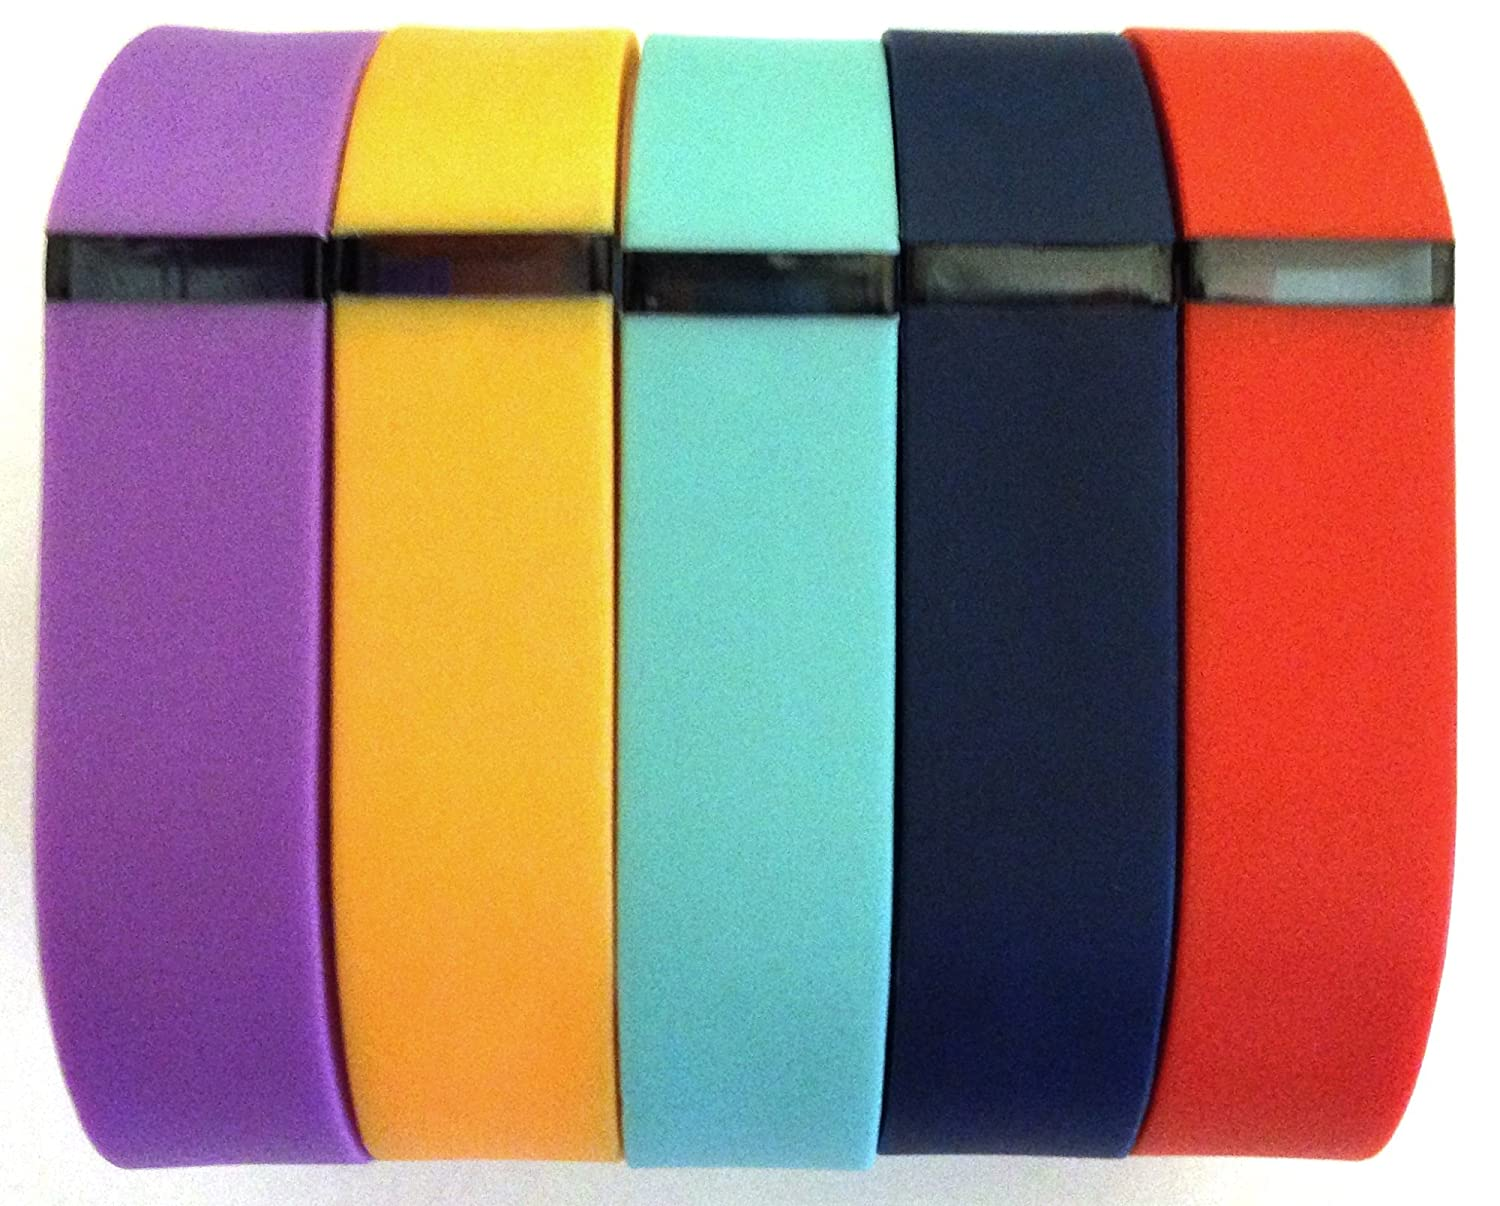 Set Large L 1pc Orange 1pc Violet 1pc Red (Tangerine) 1pc Teal (Blue/Green) 1pc Navy Replacement Bands for Fitbit FLEX Only With Clasps /No tracker/ Wireless Activity Bracelet Sport Wristband Fit Bit Flex Bracelet Sport Arm Band Clasp Armband